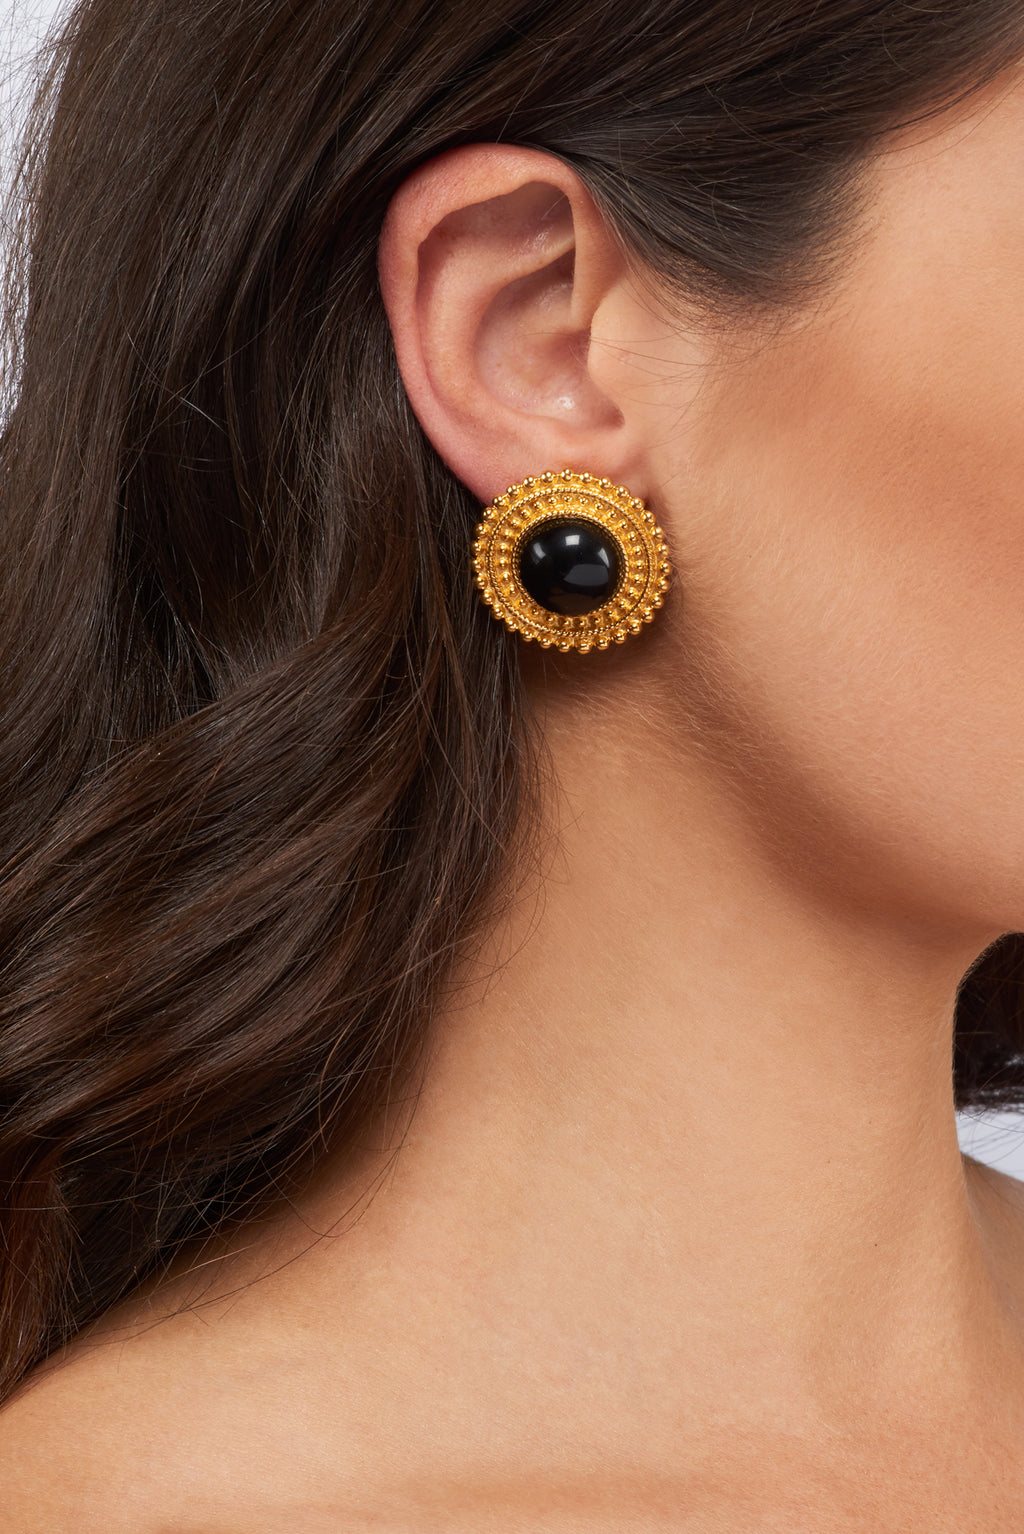 Adela Earrings - 24k Gold - Black Onyx - Angelina Alvarez